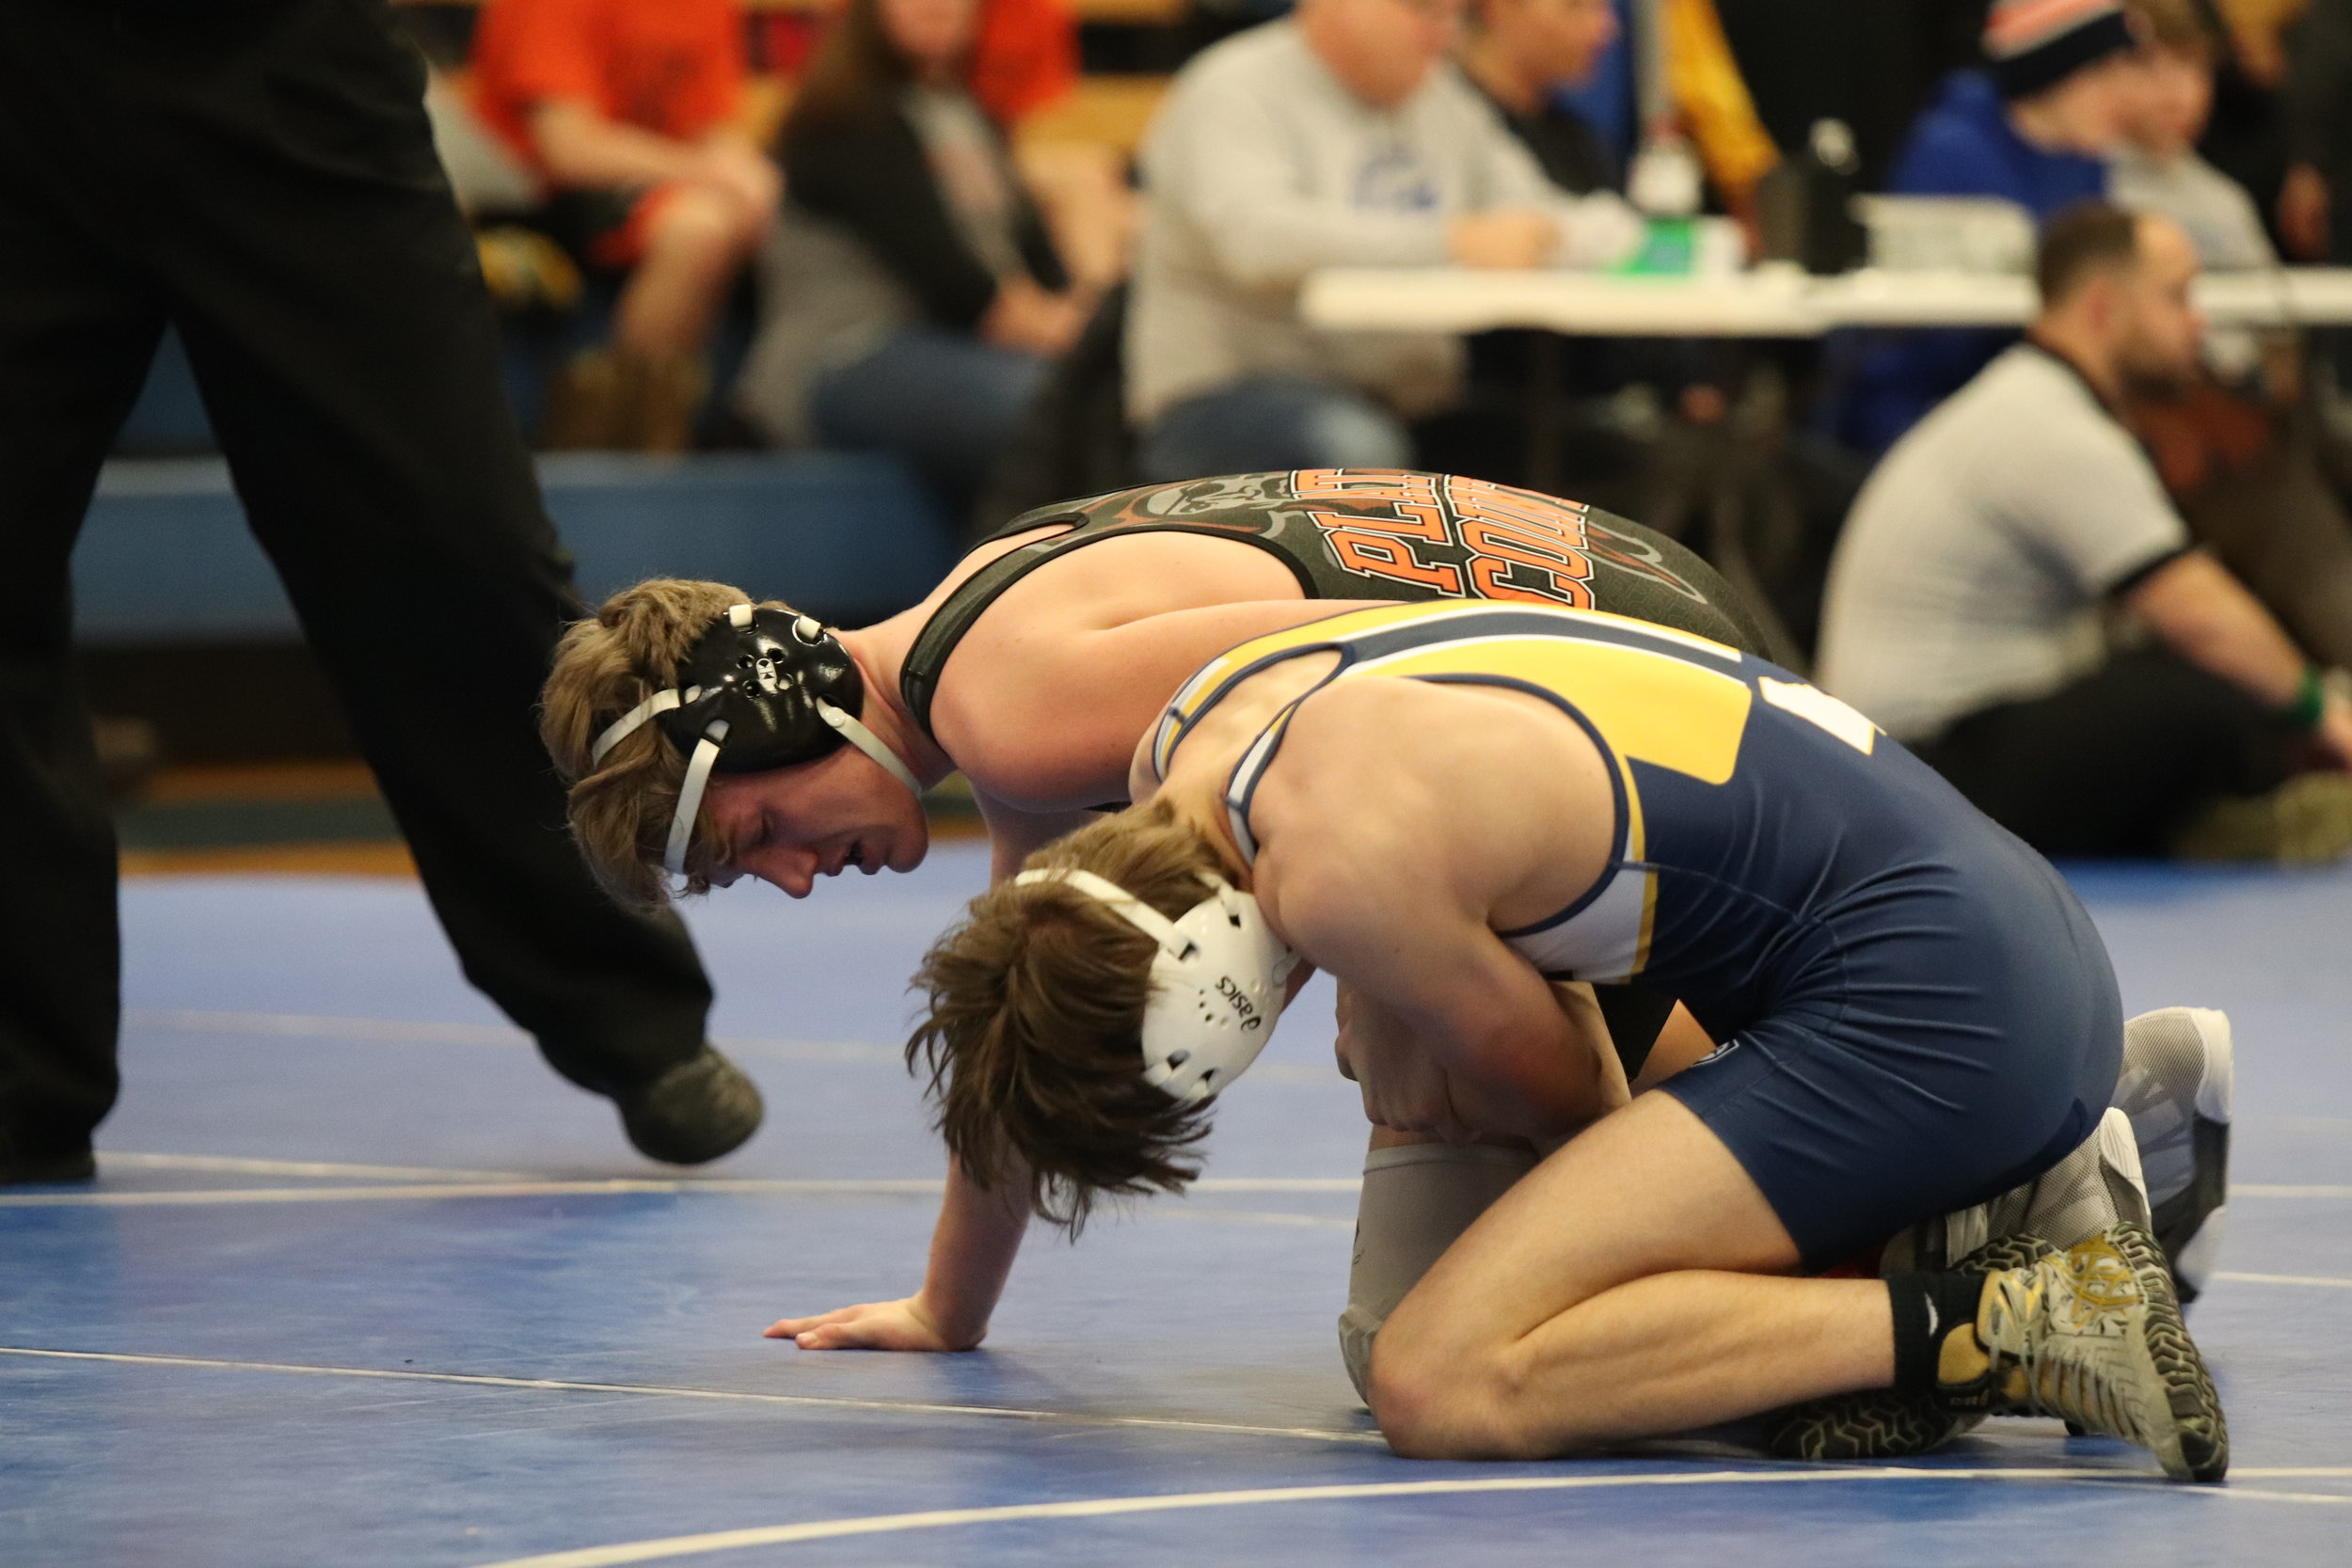 Platte County's A.J. Bingham, left, battles Liberty North' JV's Joseph Cherco in a match on Saturday, Jan. 26 at the West Platte Invitational in Weston, Mo.